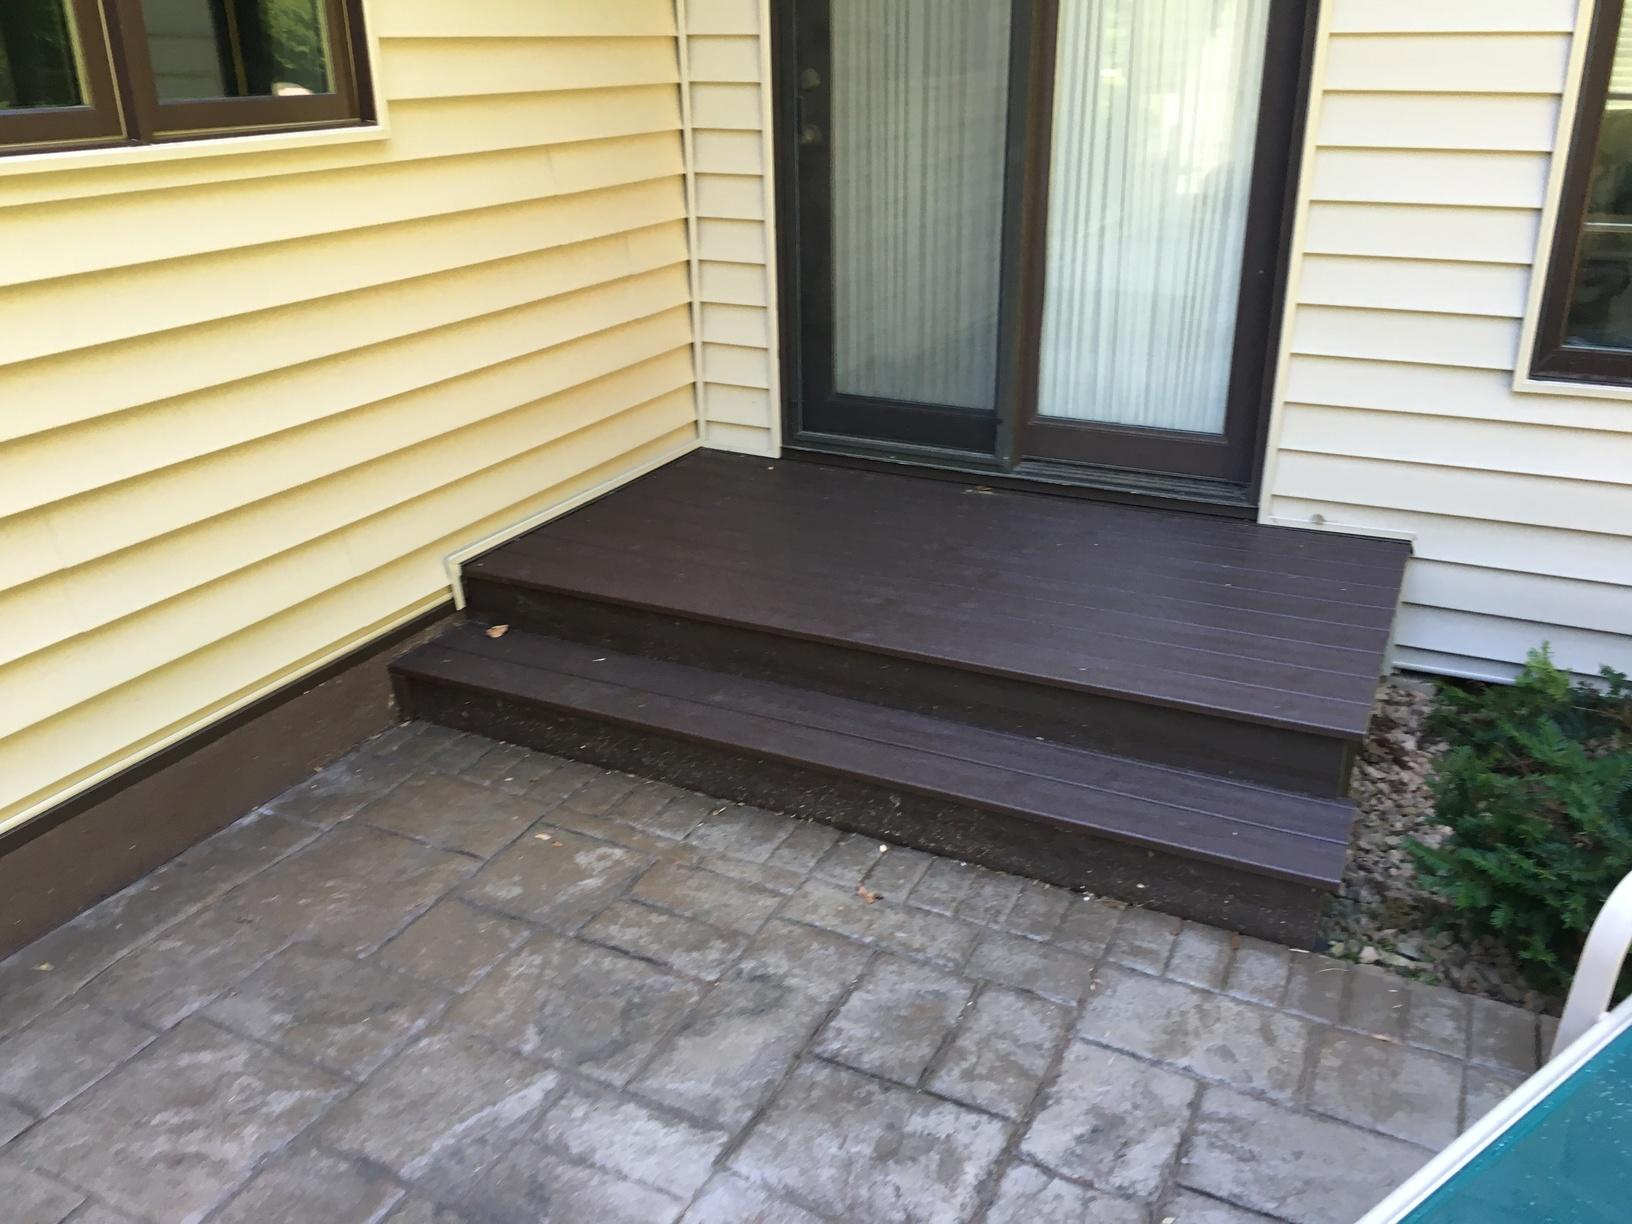 Patio deck replacement. Replaced with Trex maintenance free decking product.